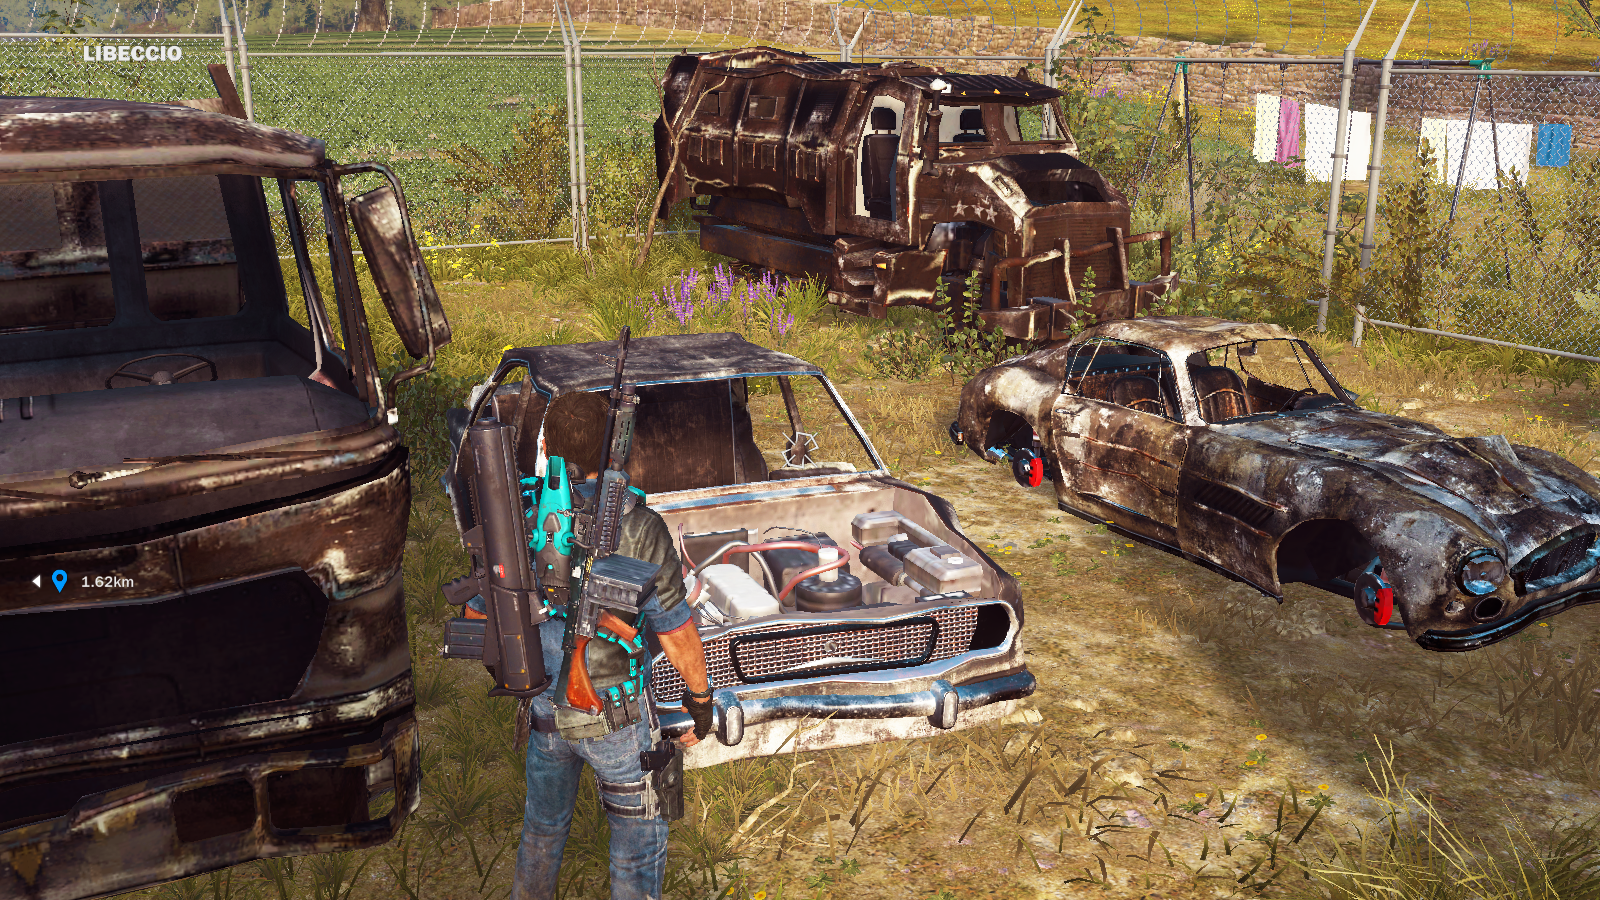 Vehicle wrecks | Just Cause Wiki | FANDOM powered by Wikia